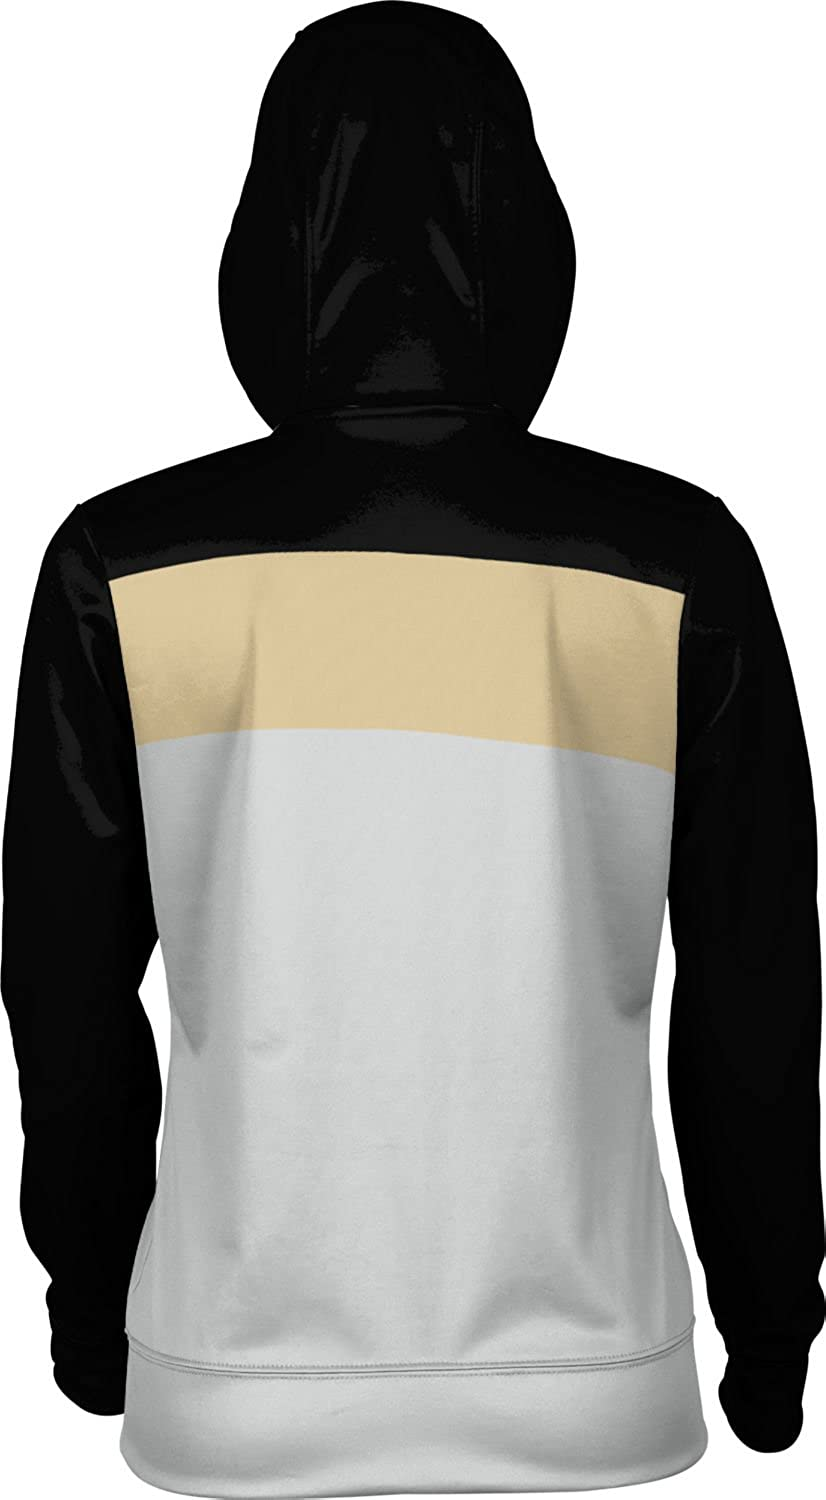 Prime Purdue University Girls Zipper Hoodie School Spirit Sweatshirt